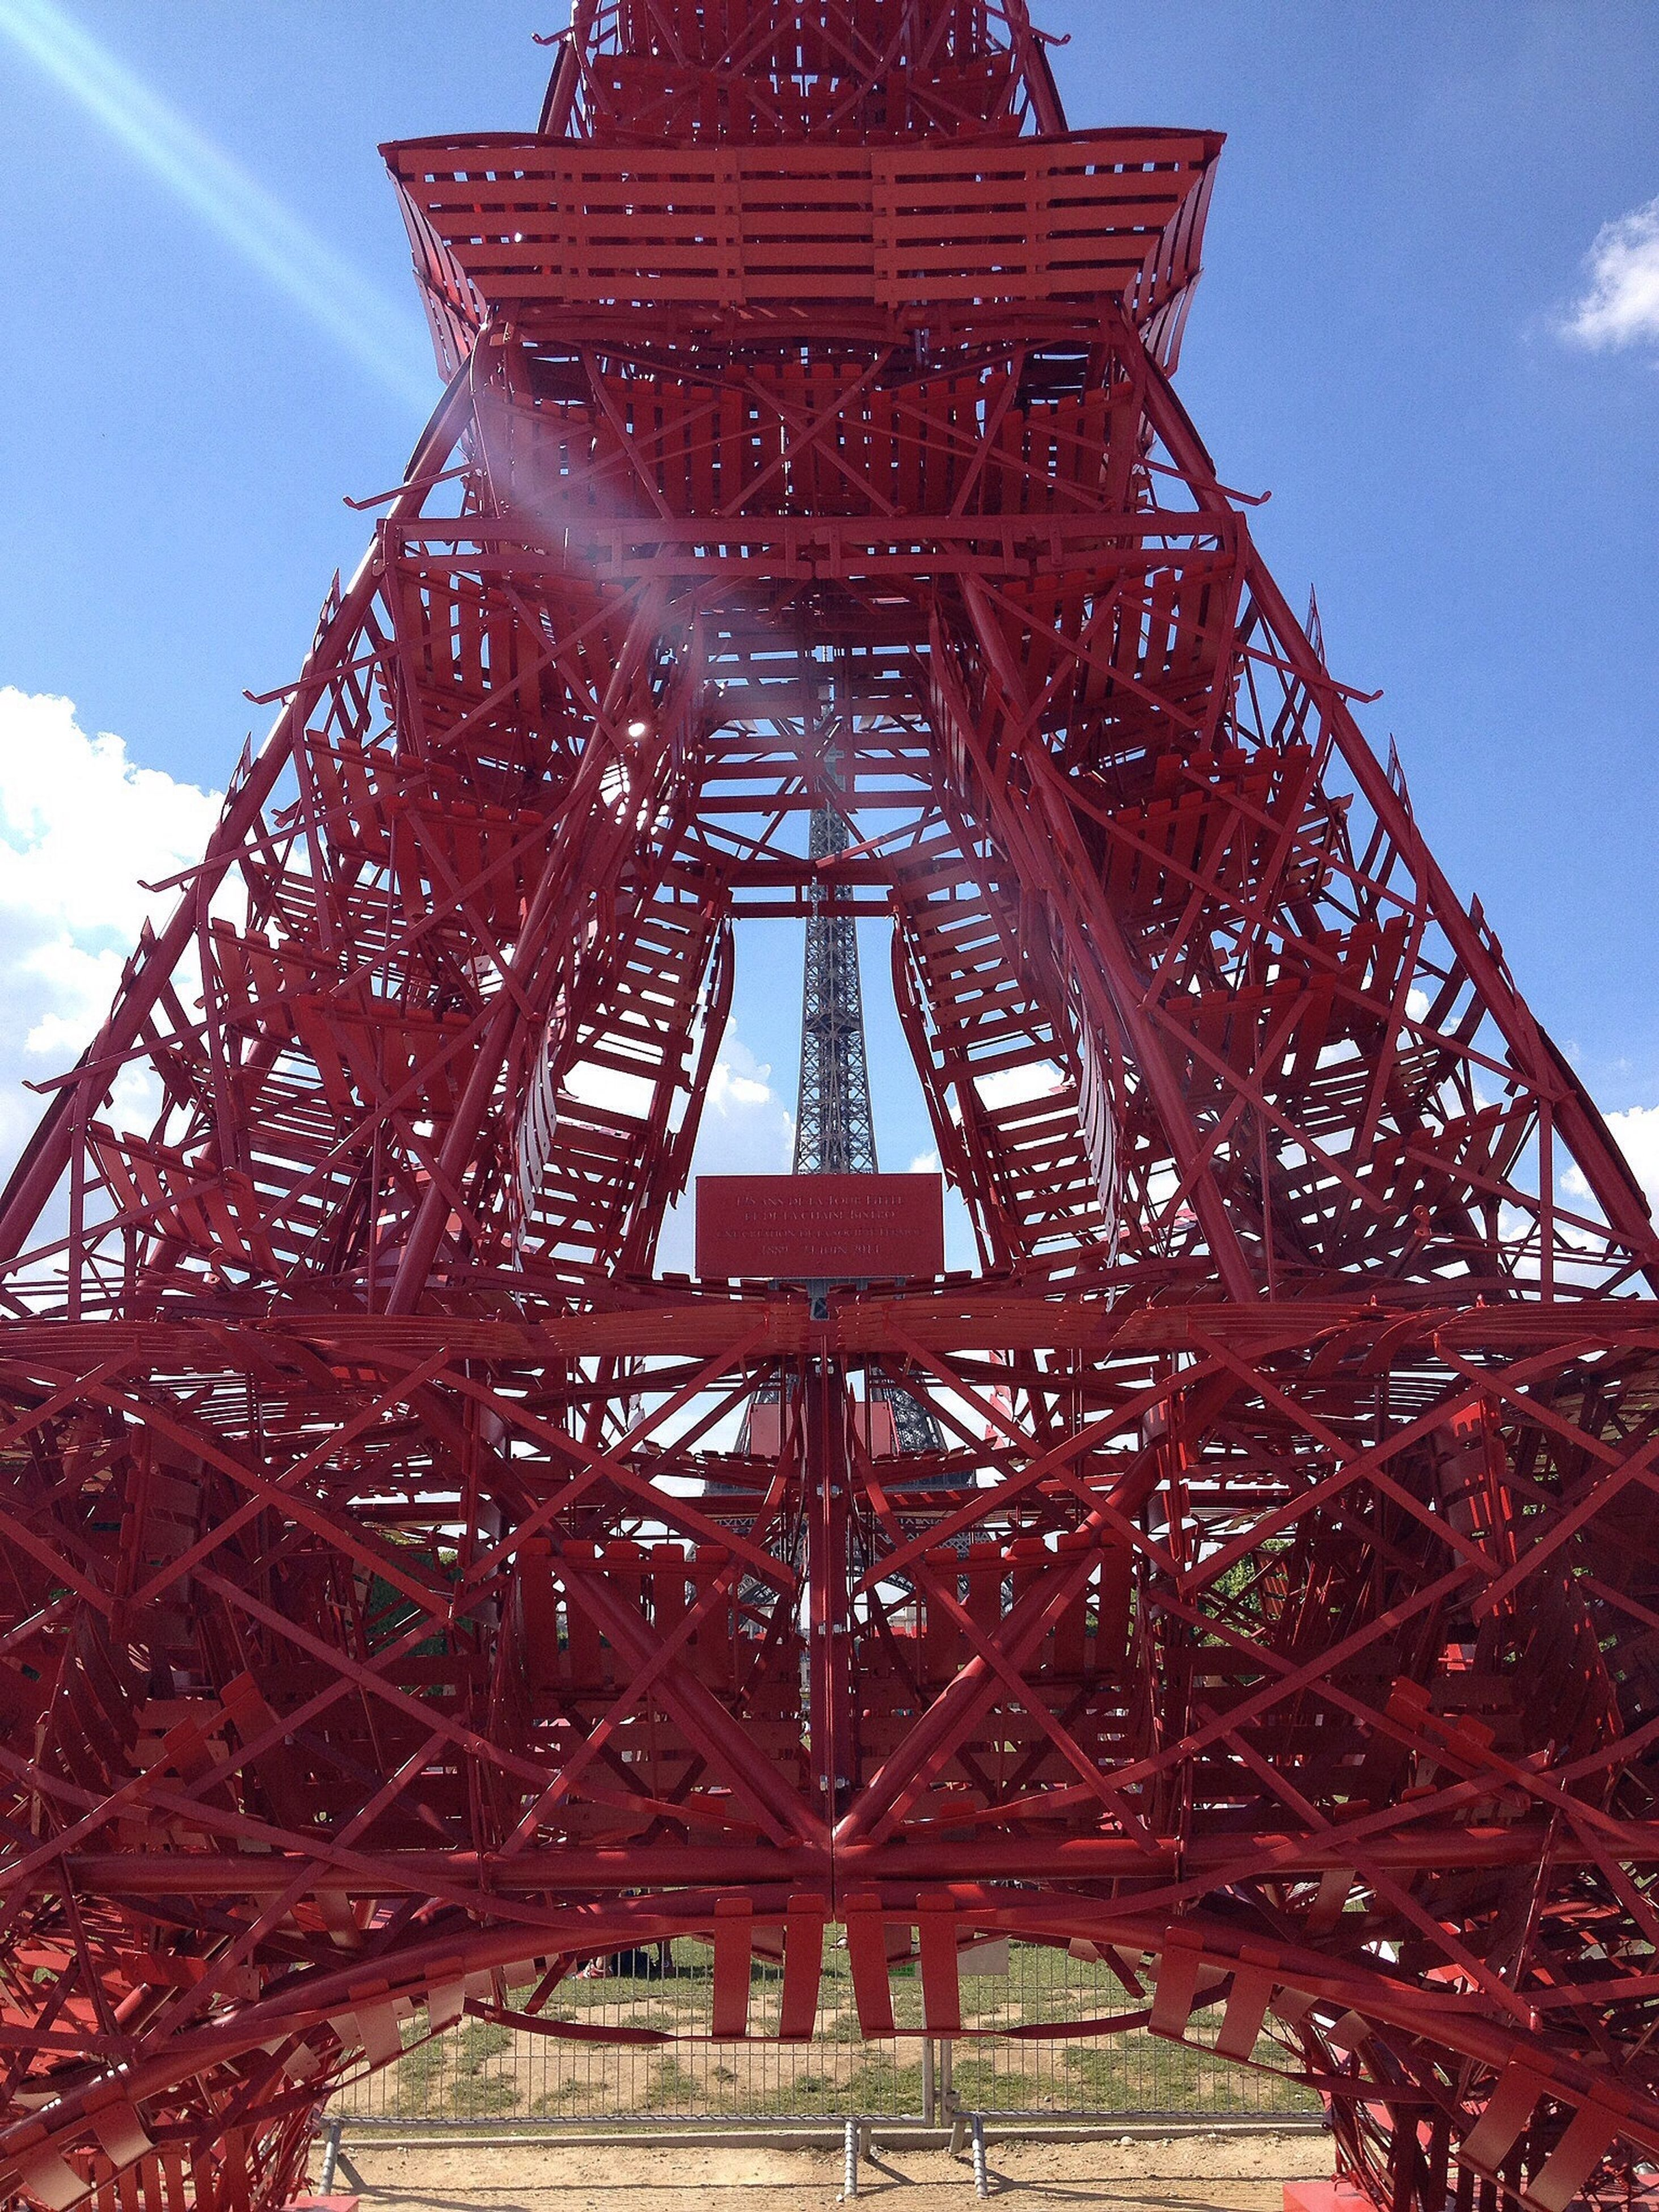 built structure, low angle view, metal, architecture, red, sky, metallic, blue, tower, building exterior, day, outdoors, communication, no people, sunlight, travel destinations, famous place, cloud, cloud - sky, tree